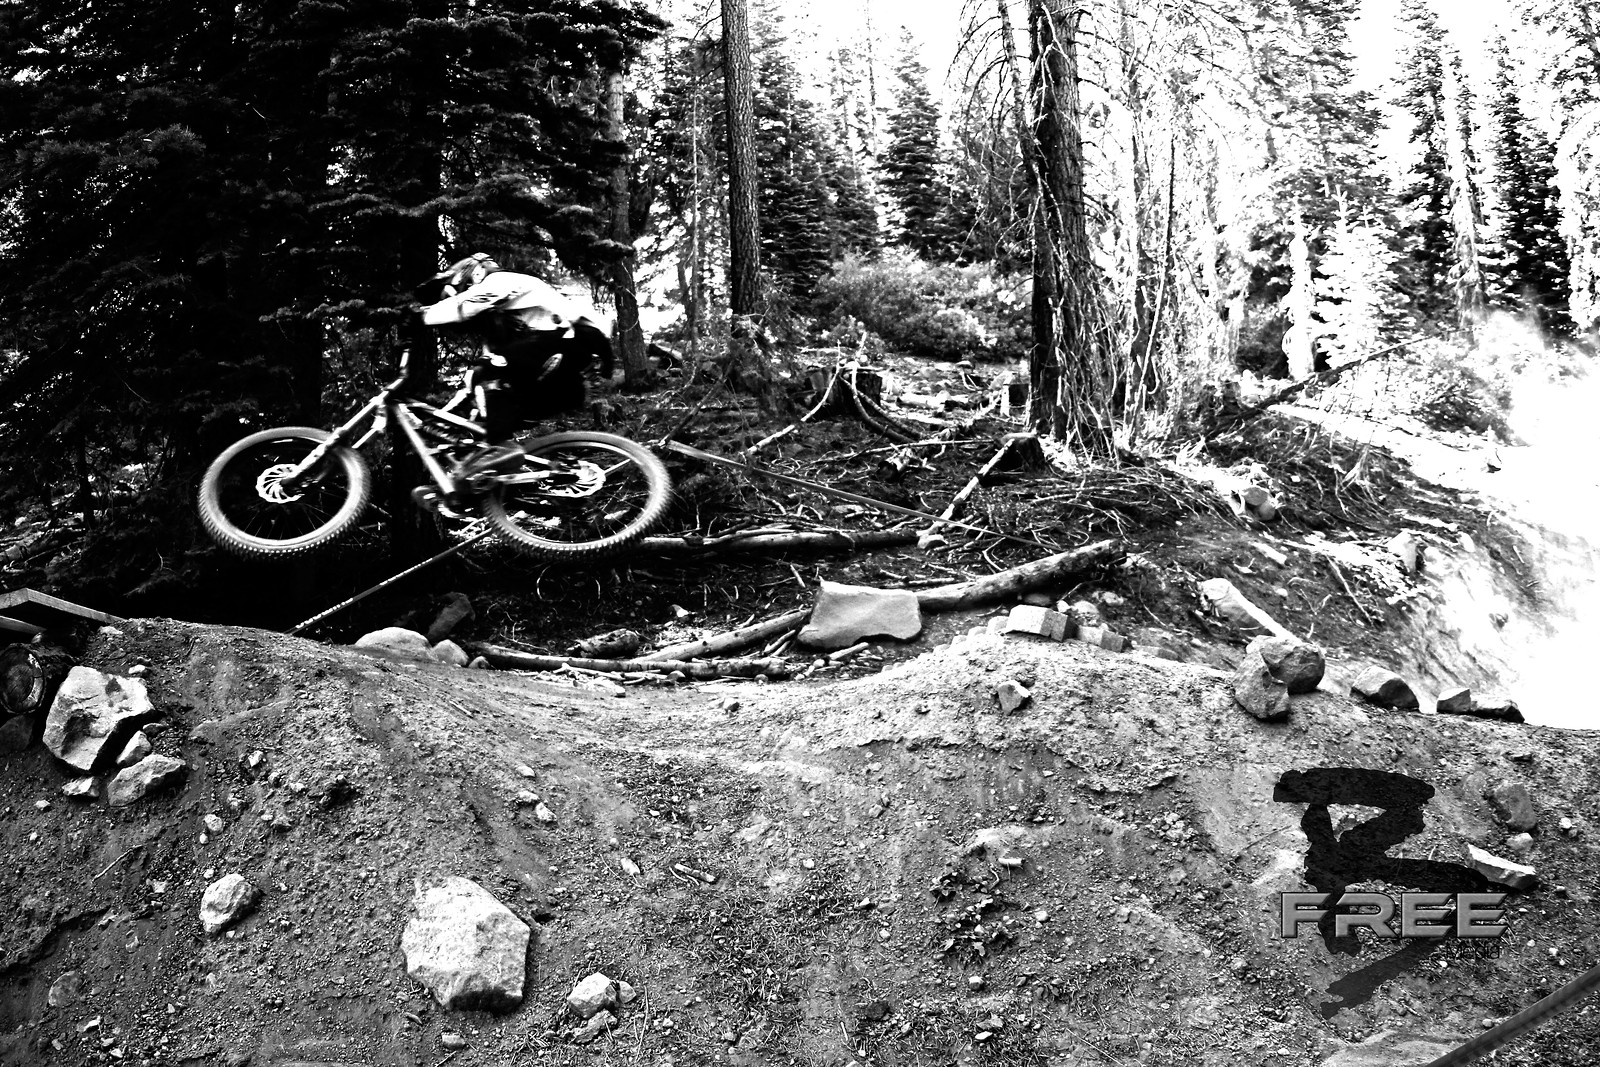 done2 - GnarHuck - Mountain Biking Pictures - Vital MTB